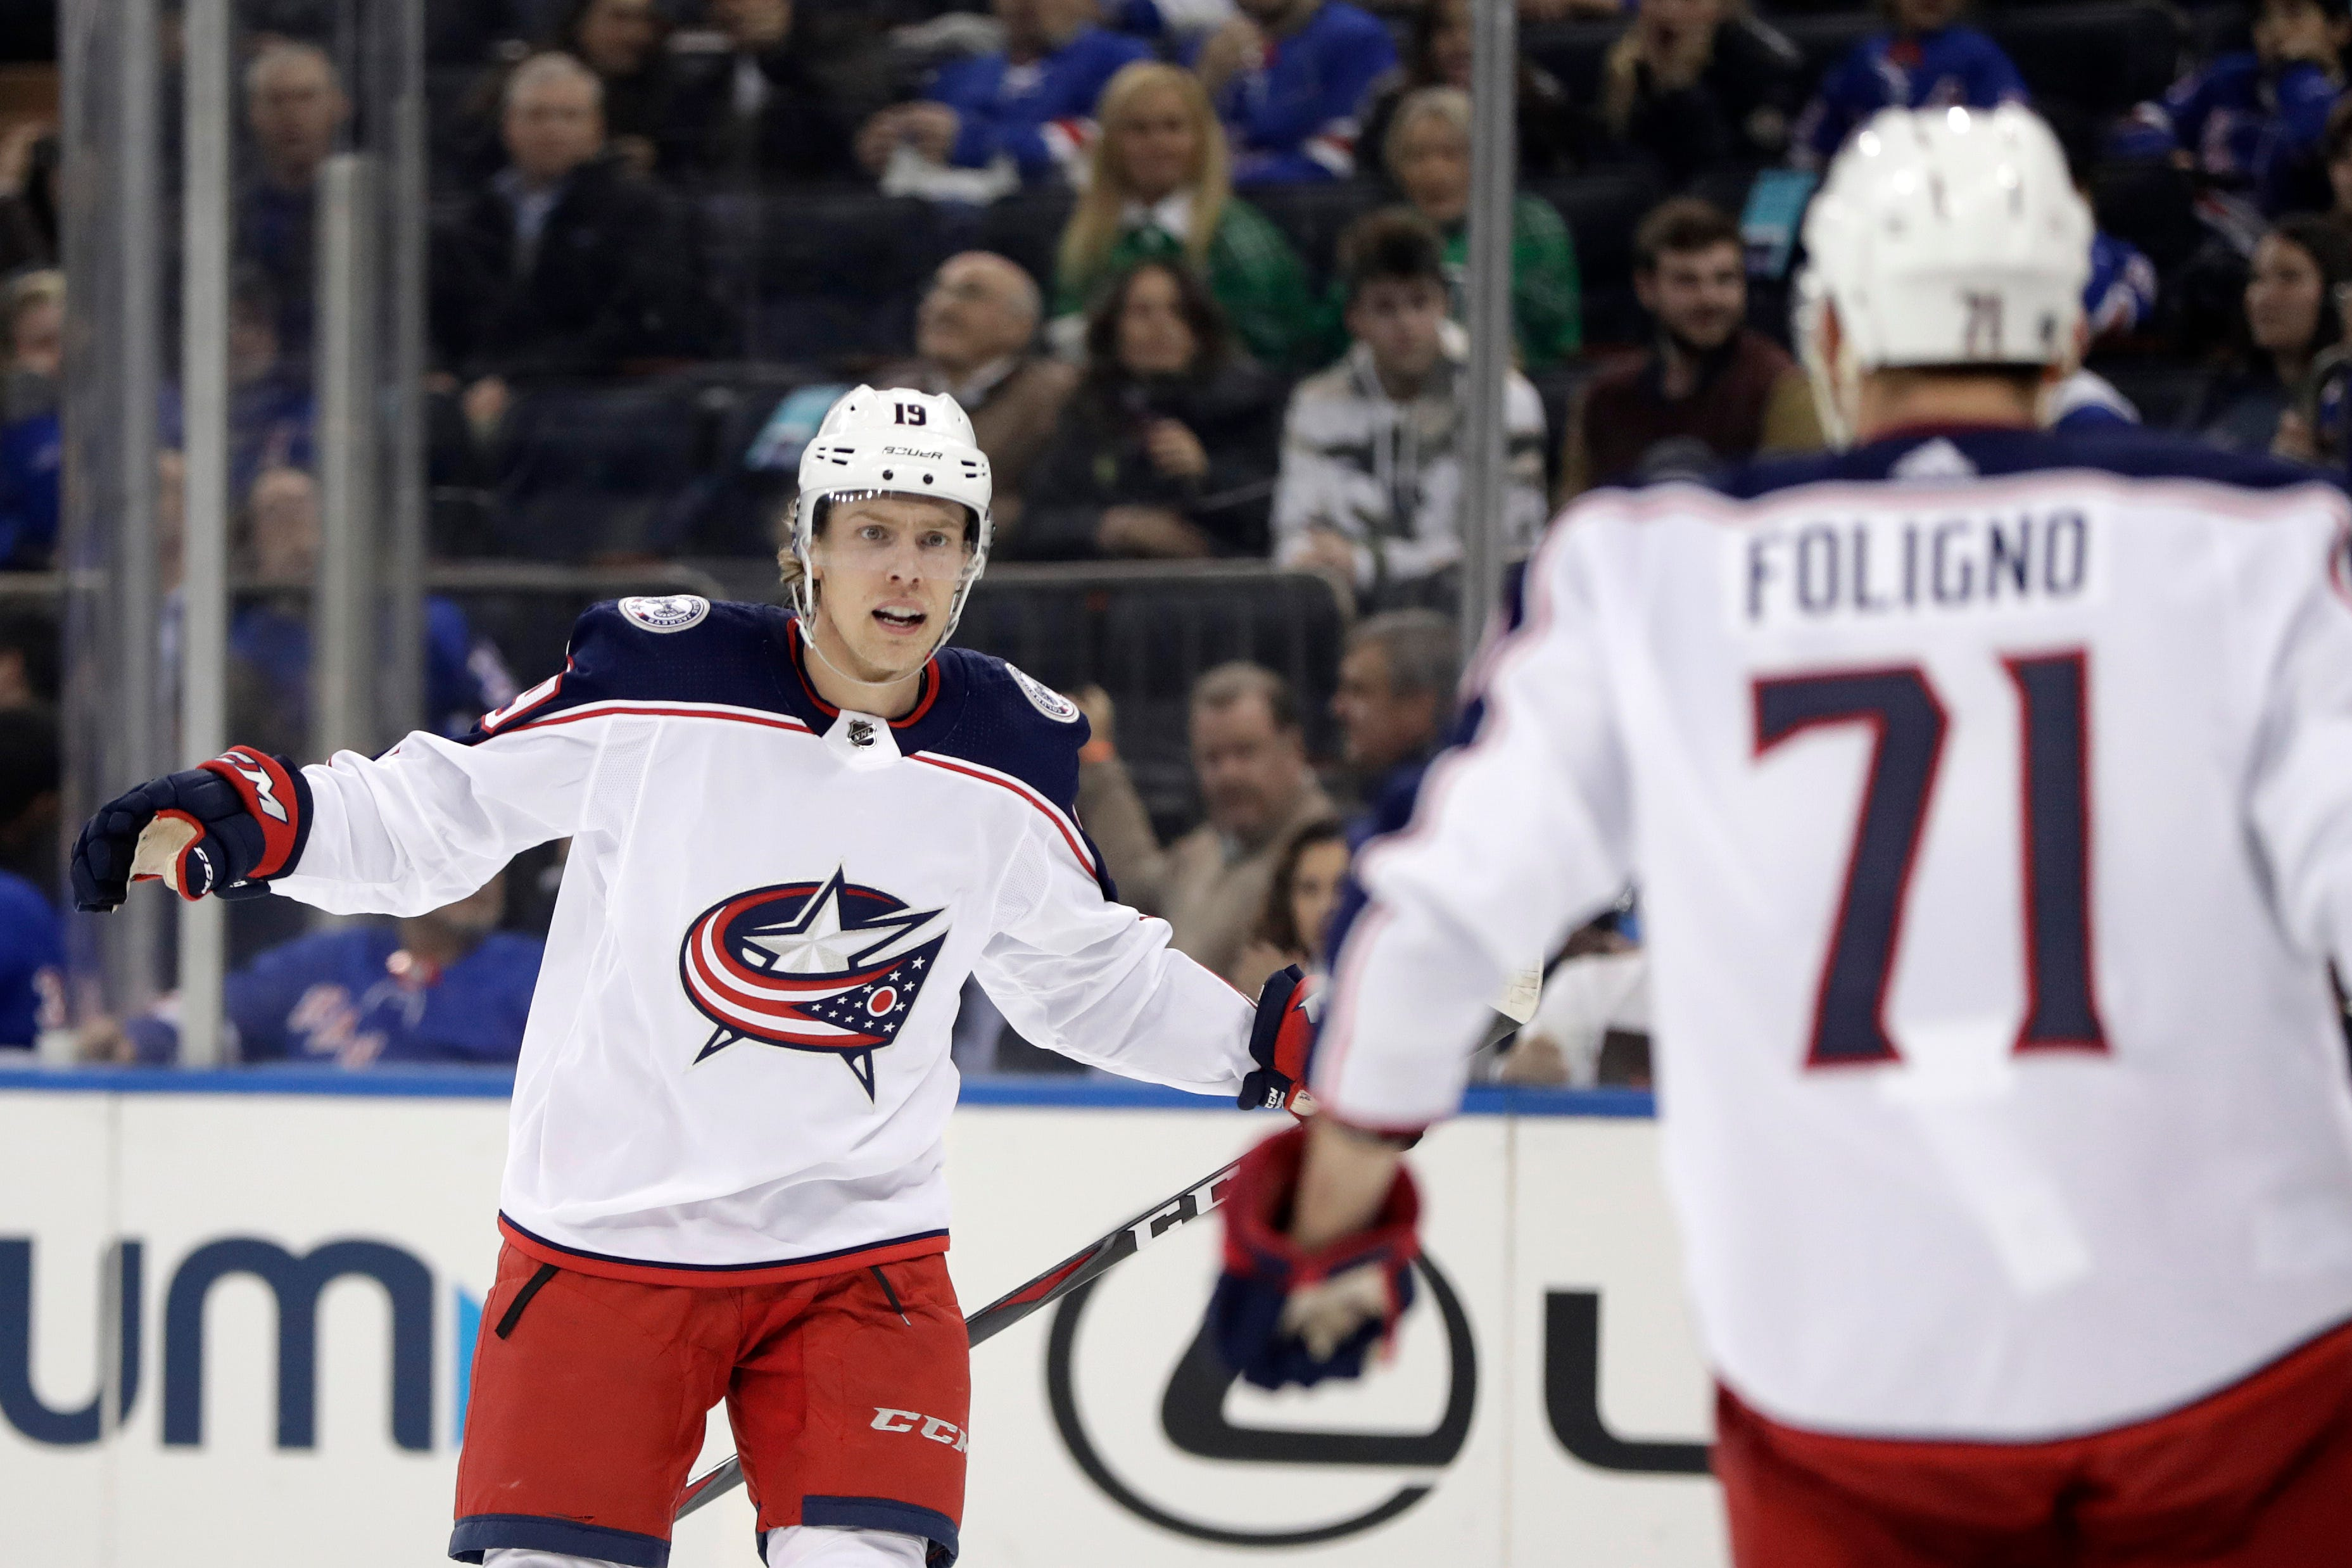 Blue Jackets edge Rangers in shootout to earn playoff spot